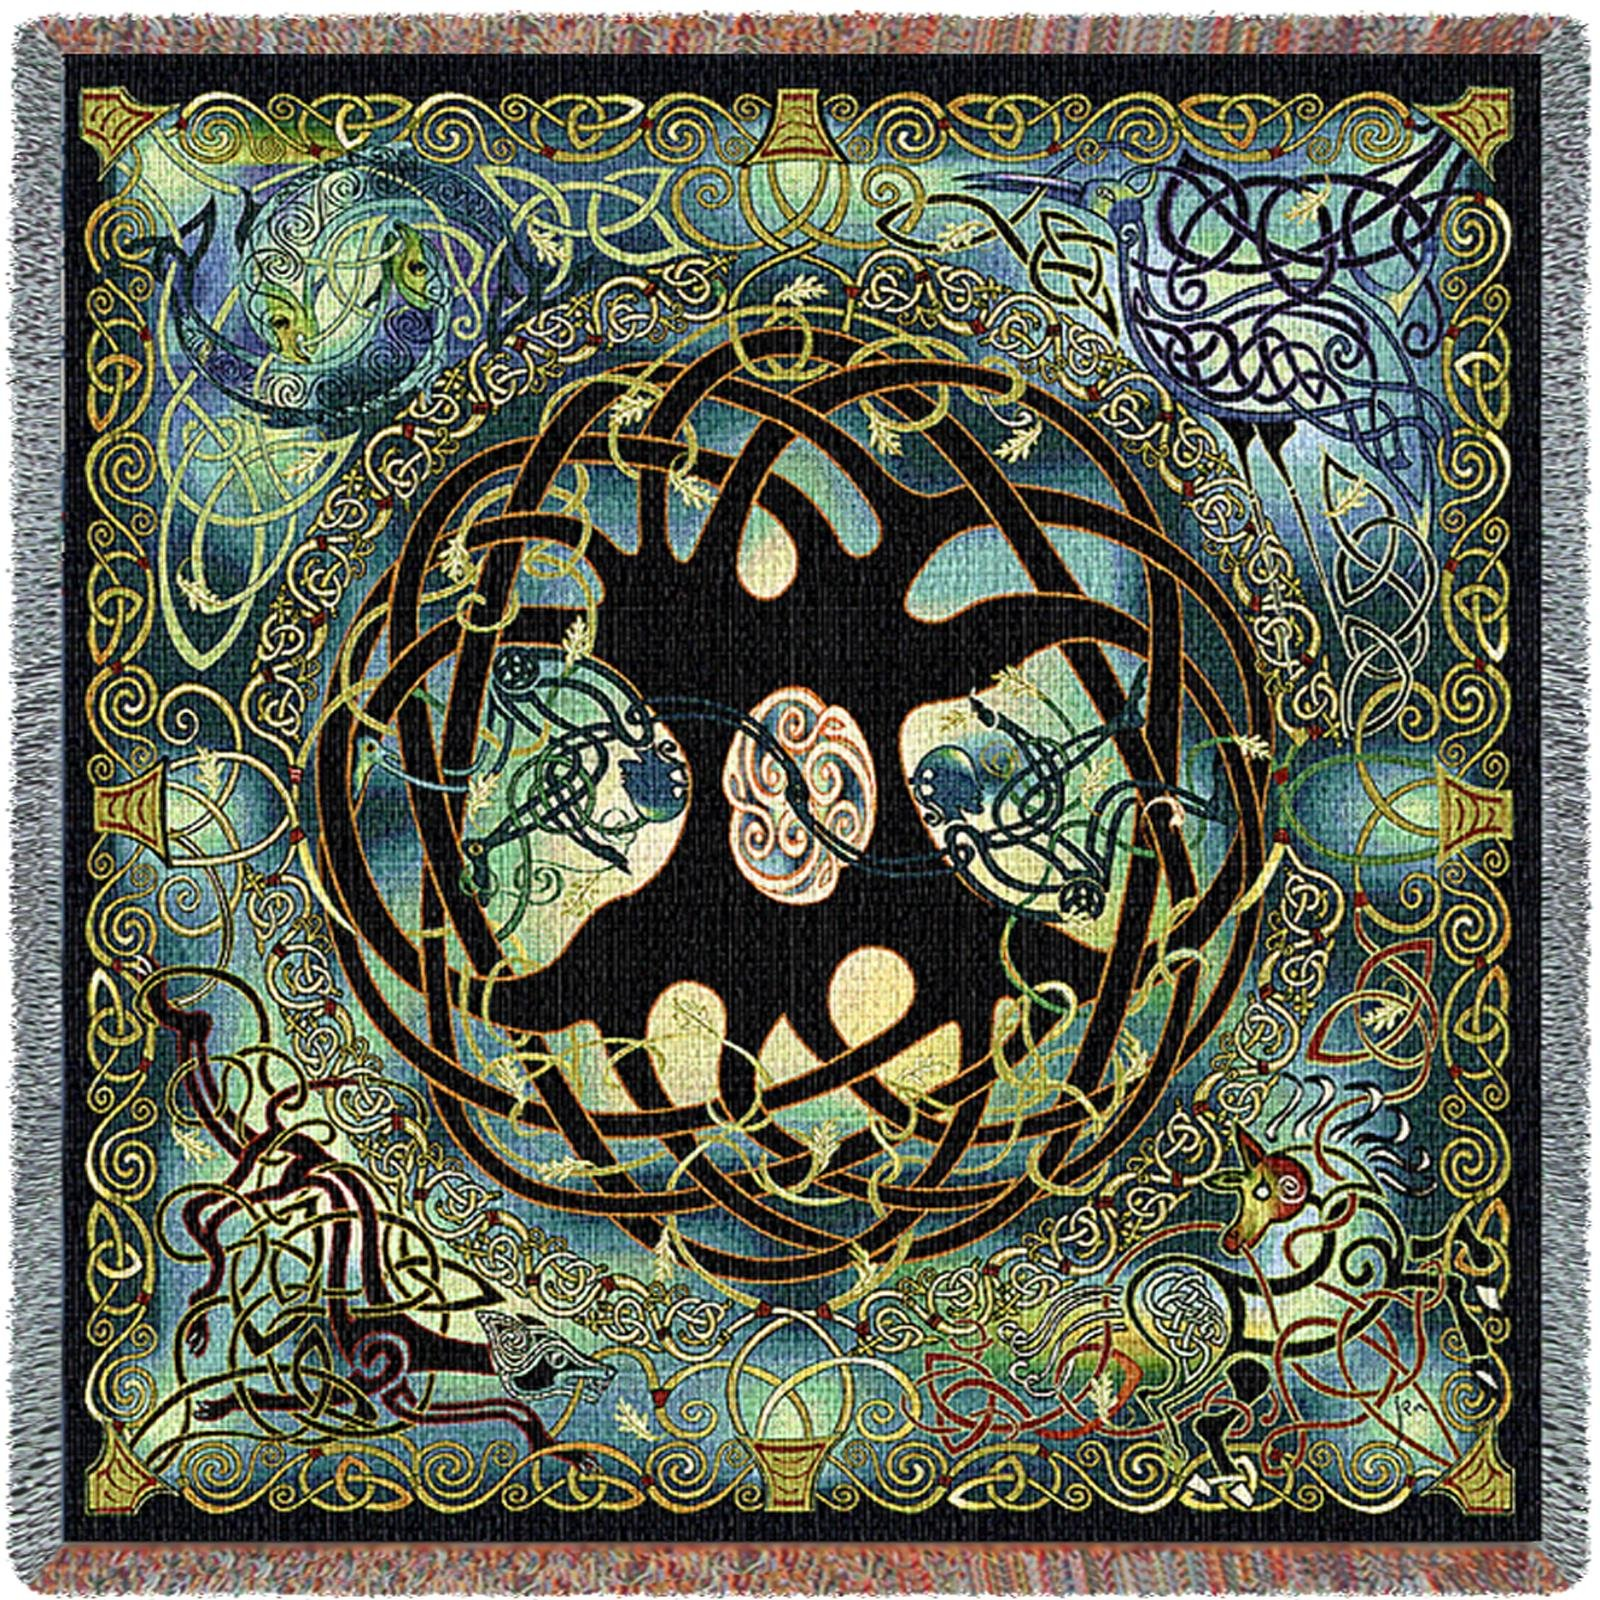 Pure Country Inc. Celtic Tree of Life Blanket Cotton Woven Tapestry Throw with Fringe, 53 x 53, Multicolor